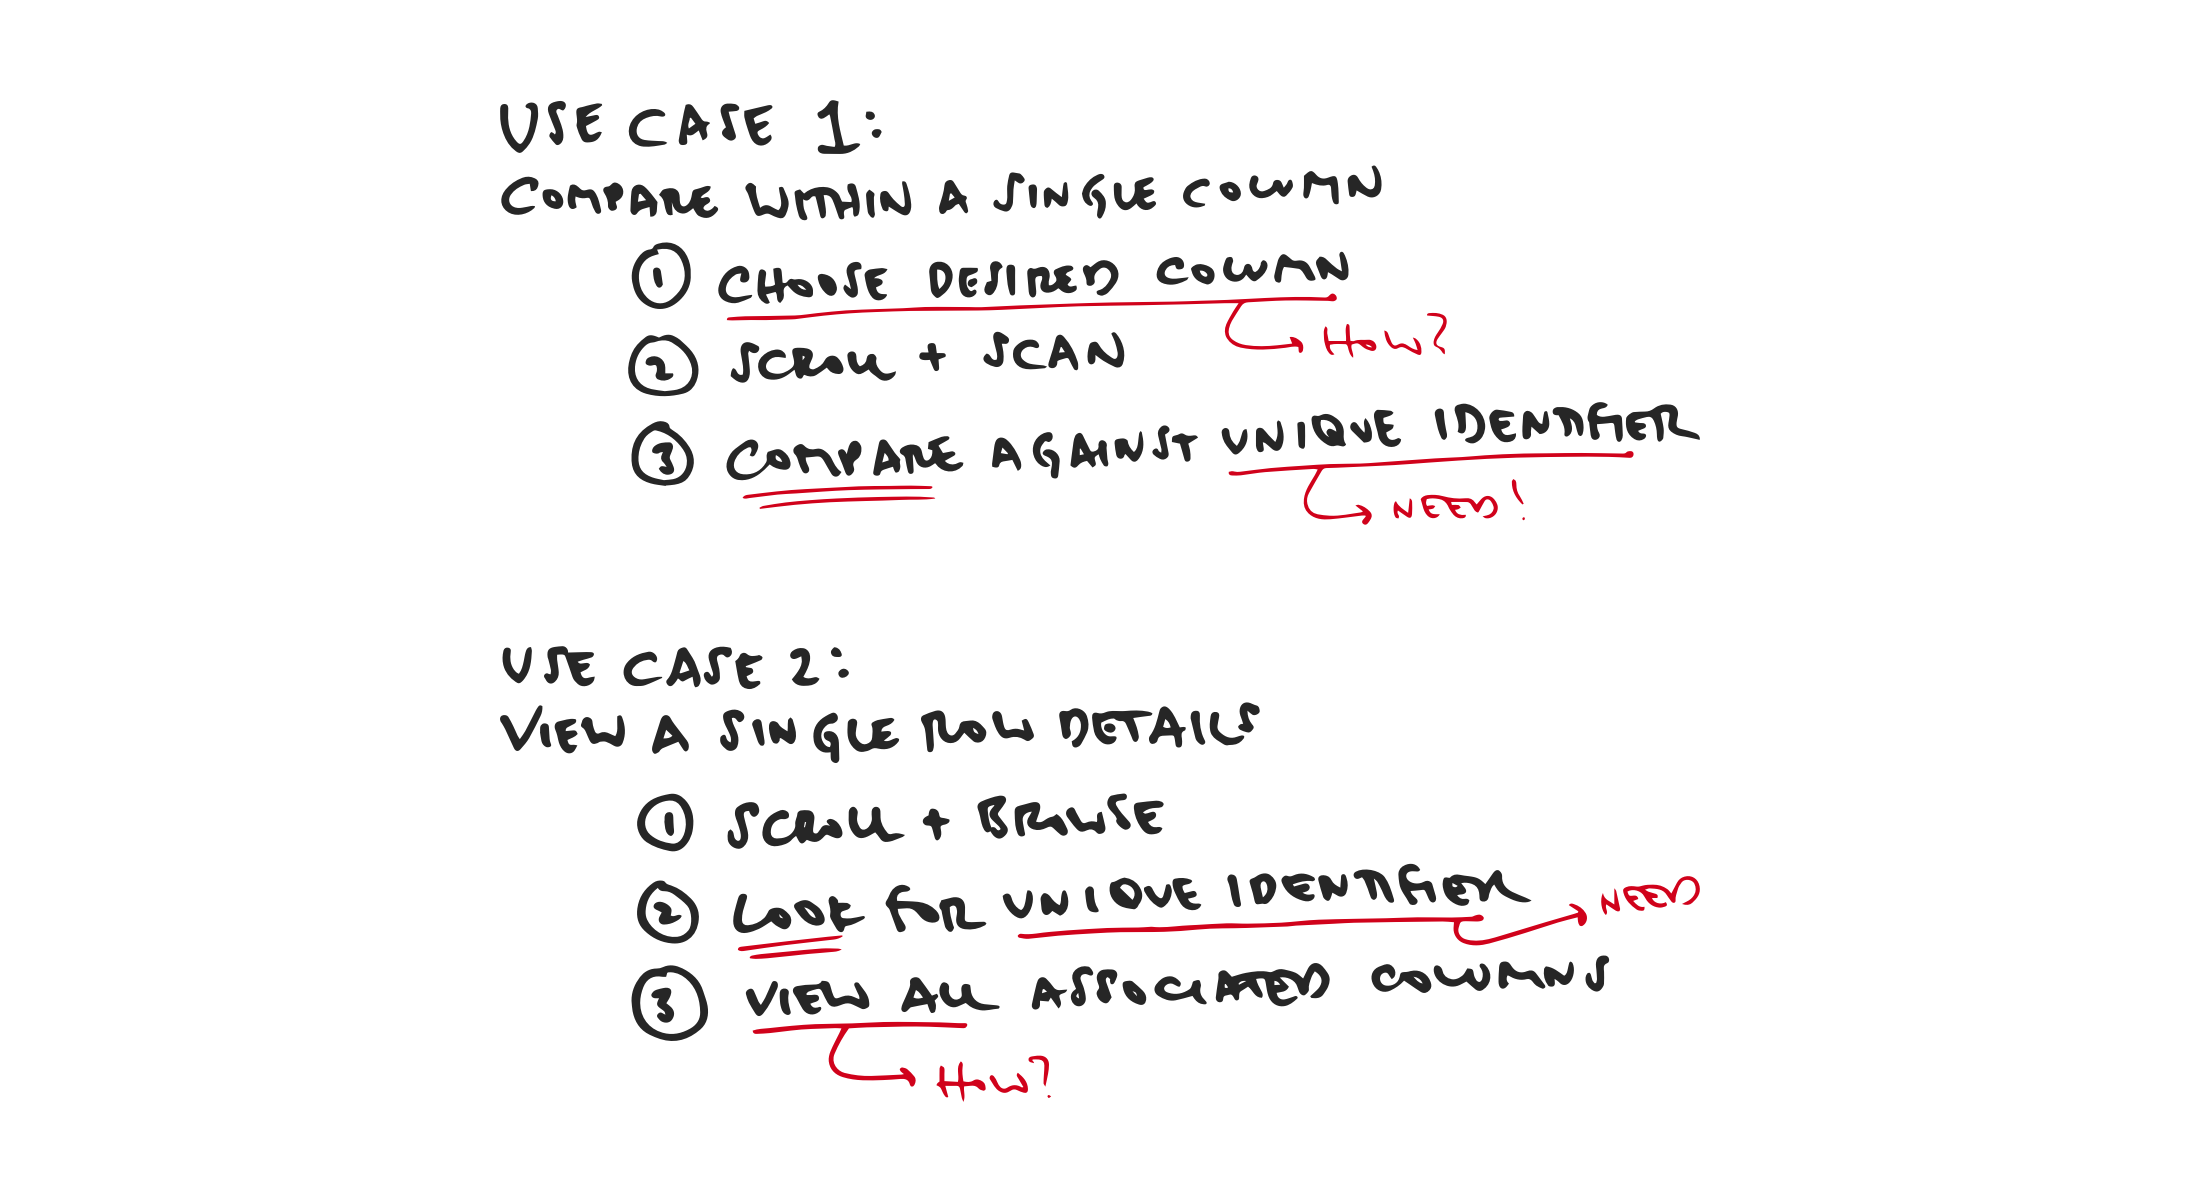 Sketches highlighting the specific requirements to satisfy each use case.